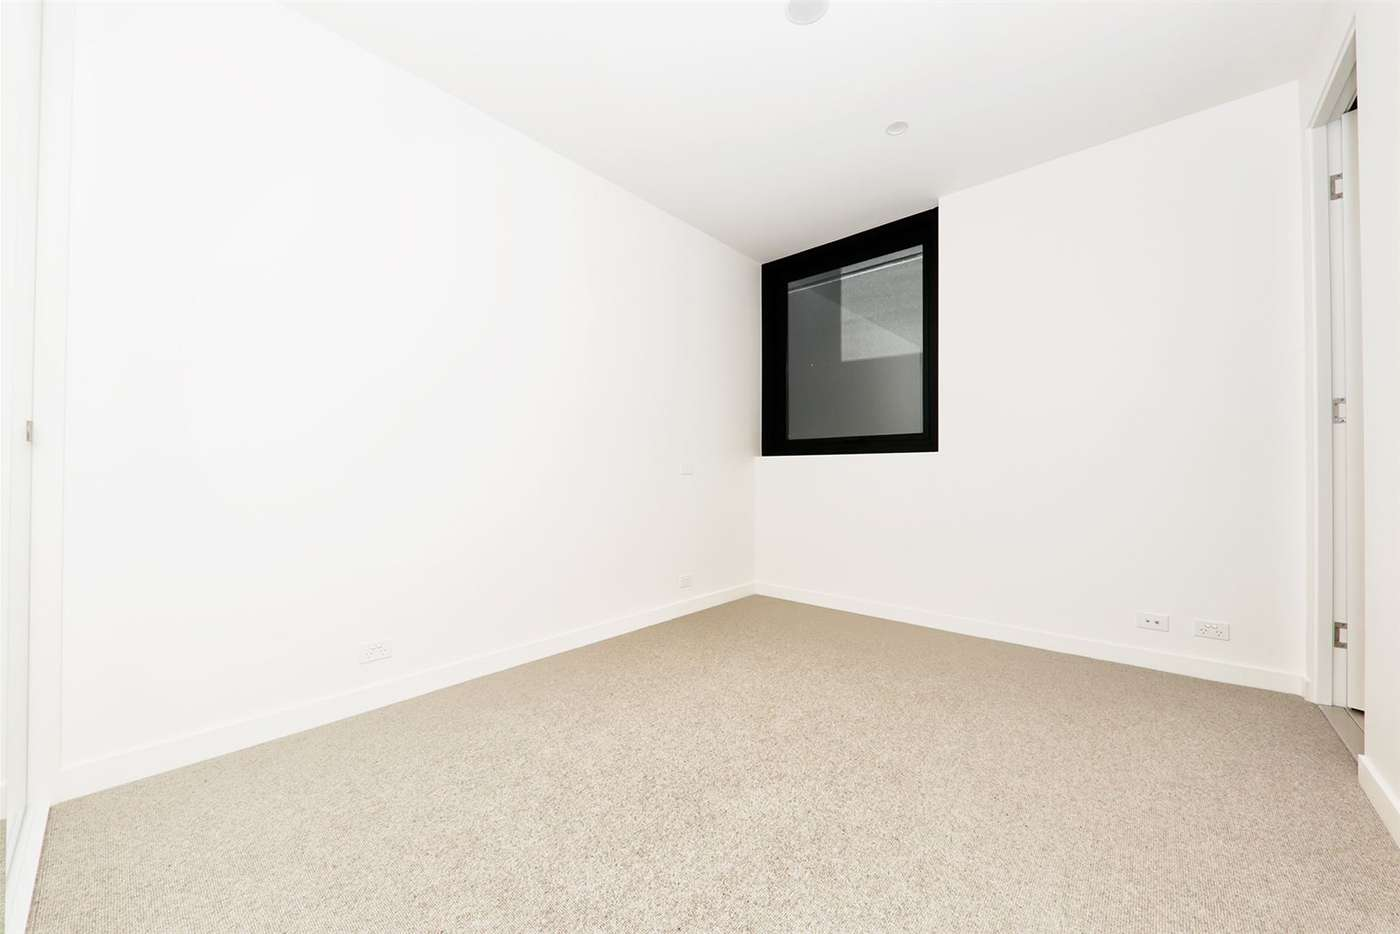 Sixth view of Homely apartment listing, 1314/52-54 Osullivan Road, Glen Waverley VIC 3150